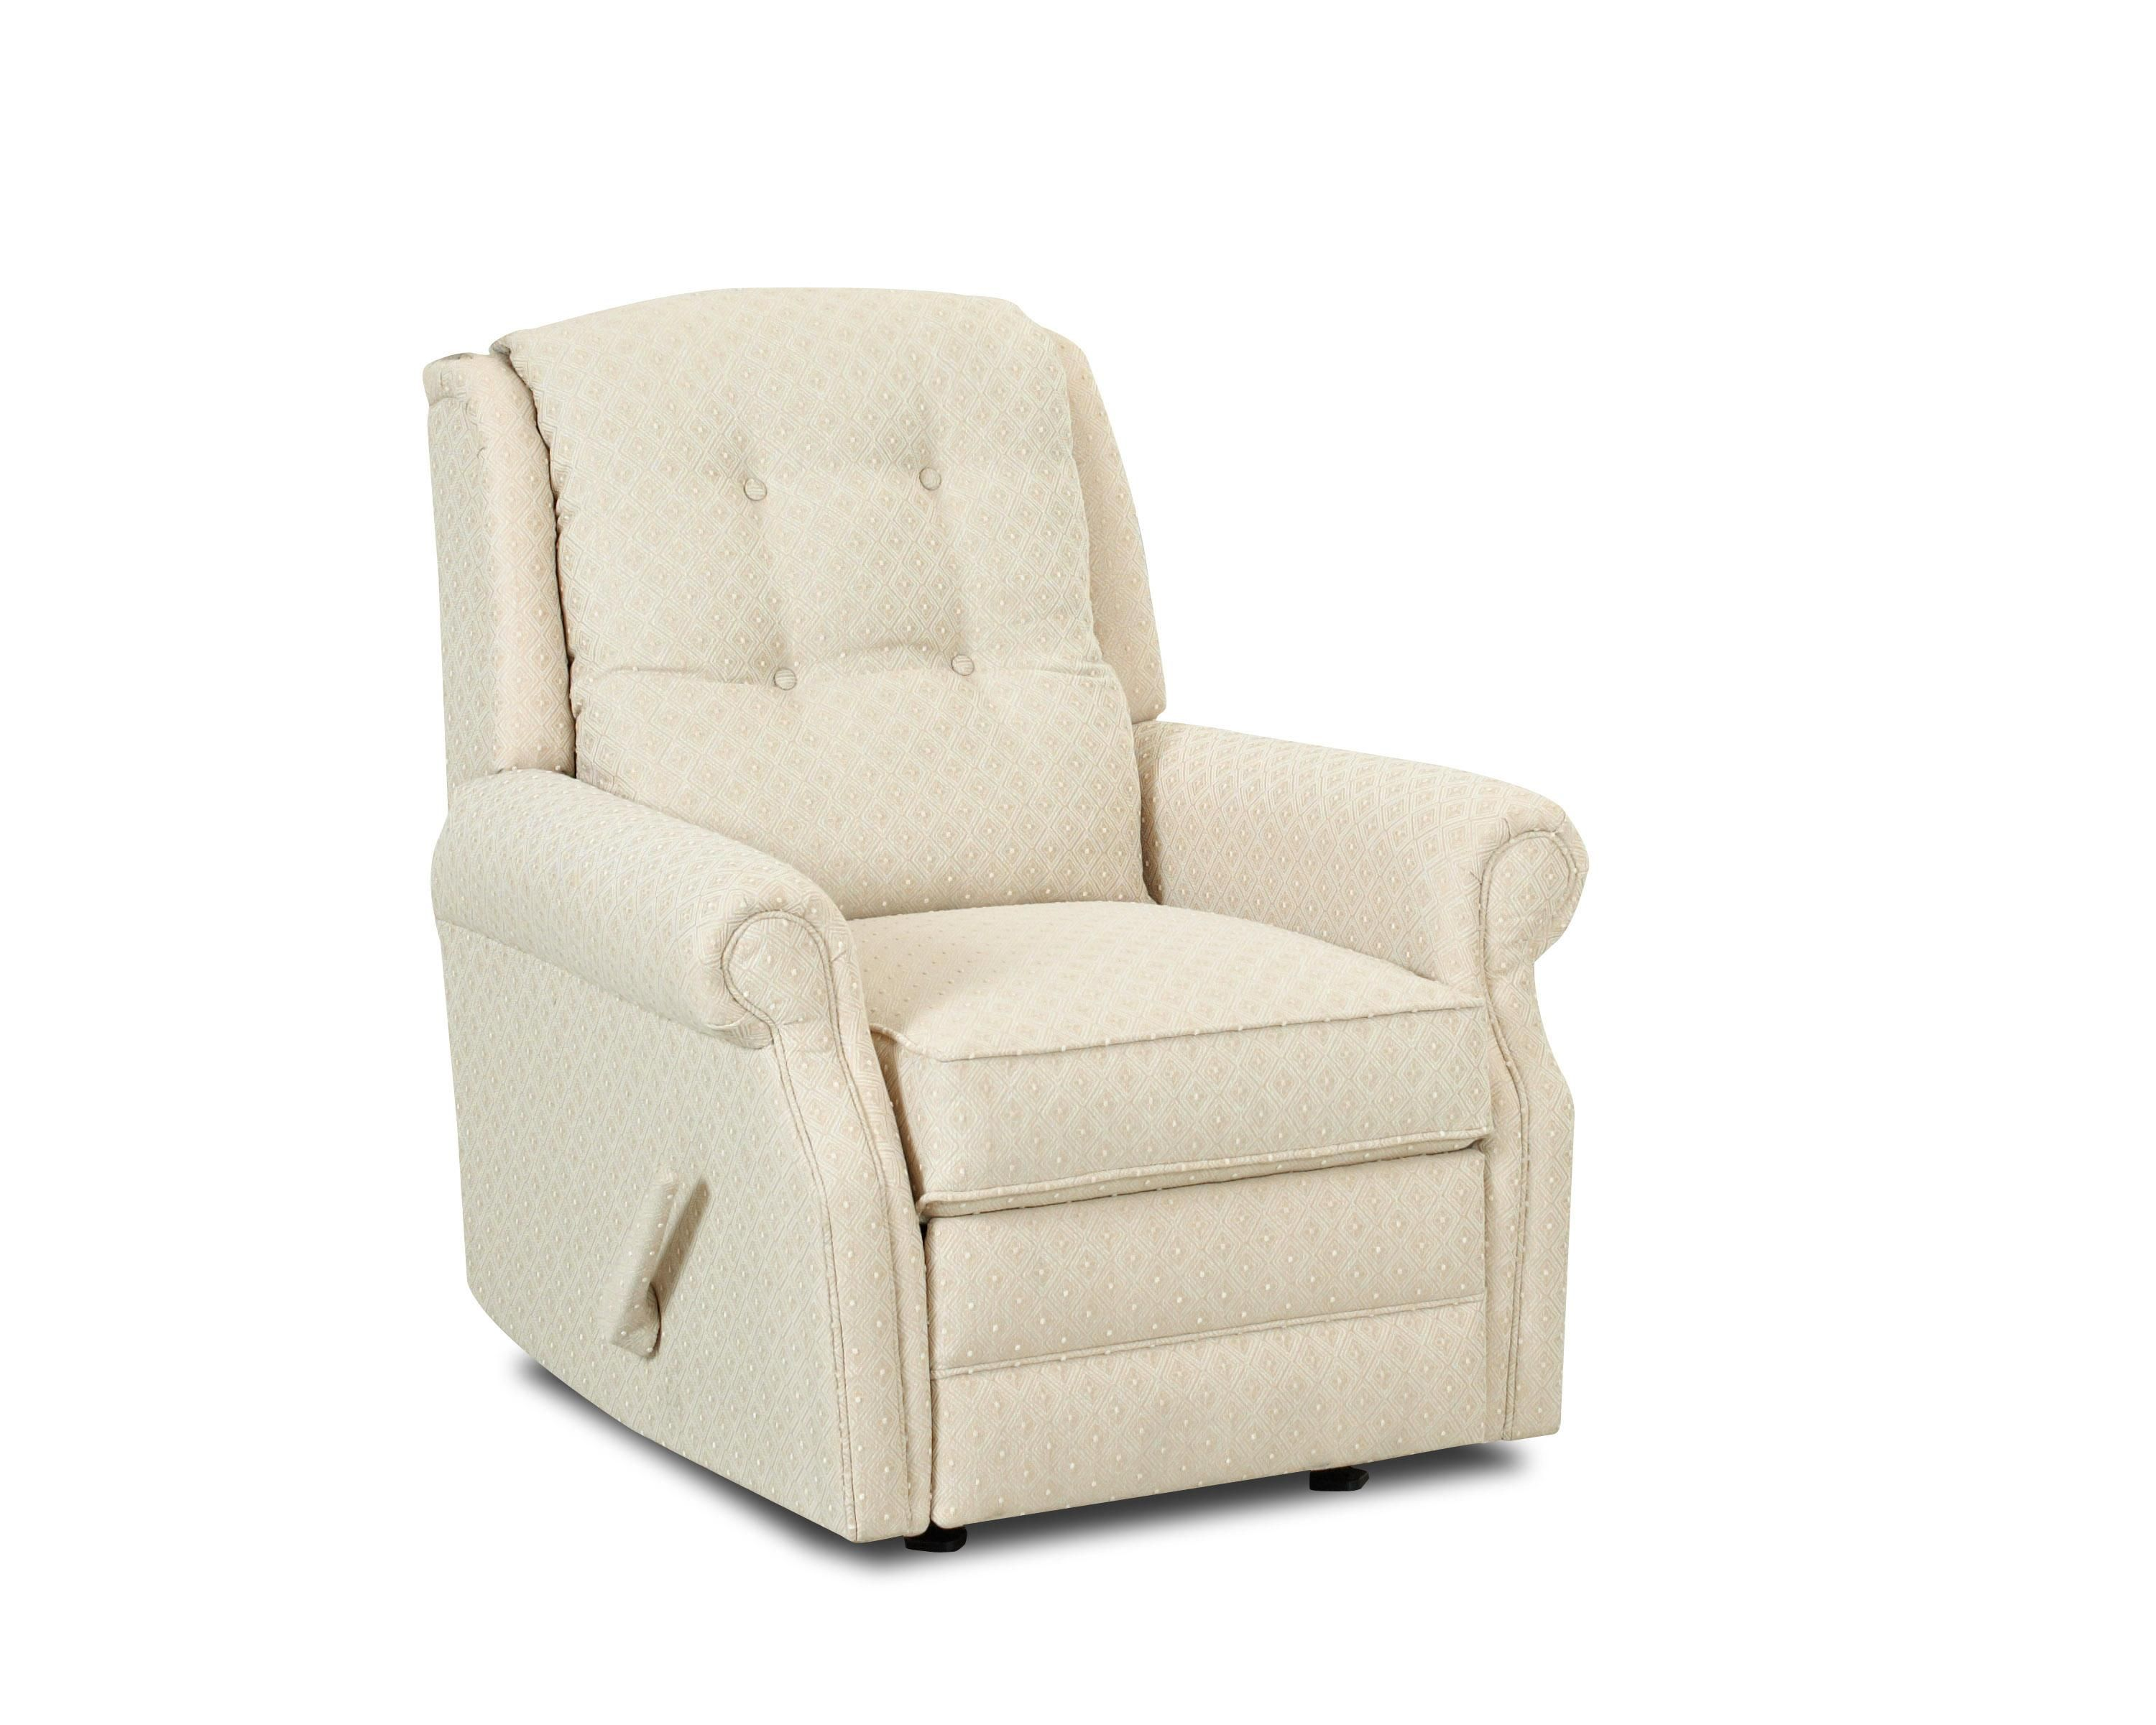 transitional manual gliding reclining chair with button tufting